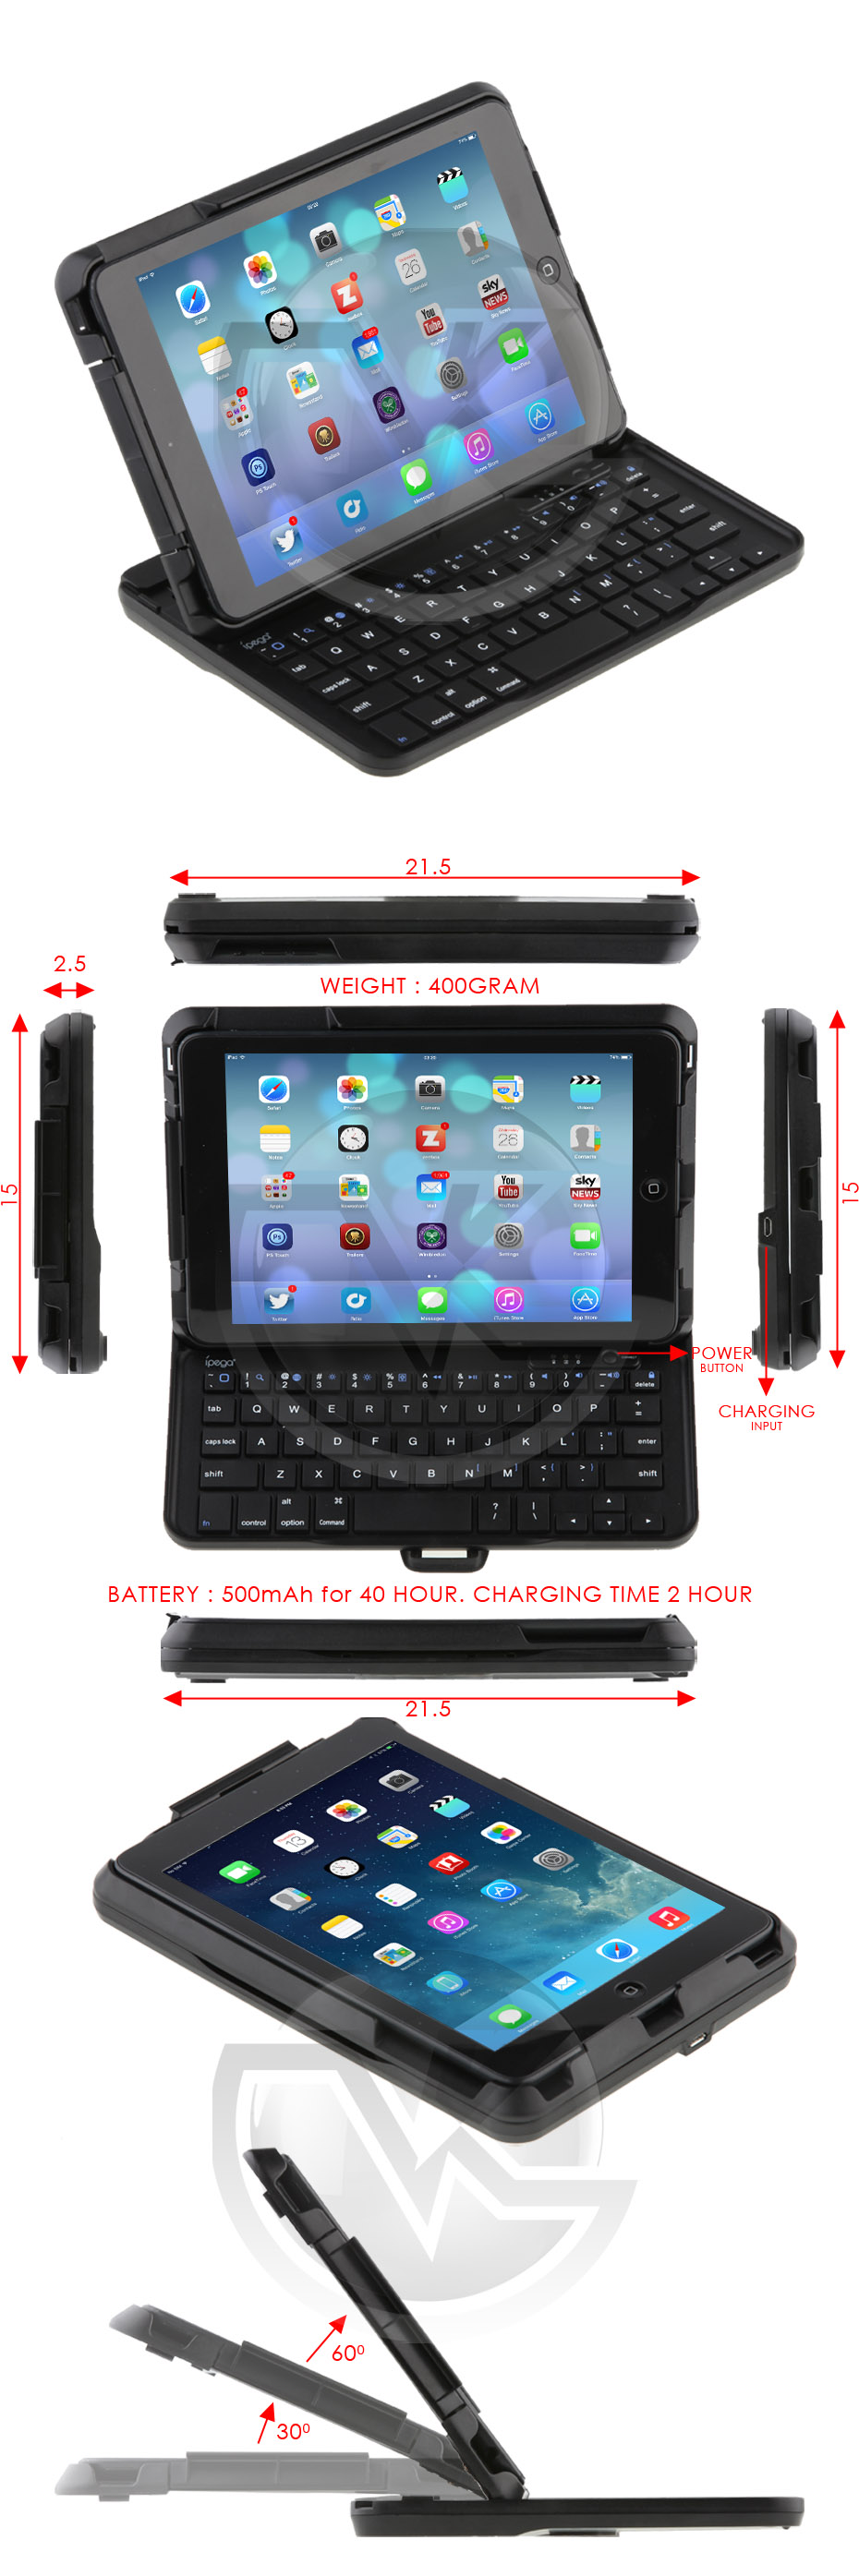 iPad Mini Keyboard Slide Case Stand PG-IPM015 Overview